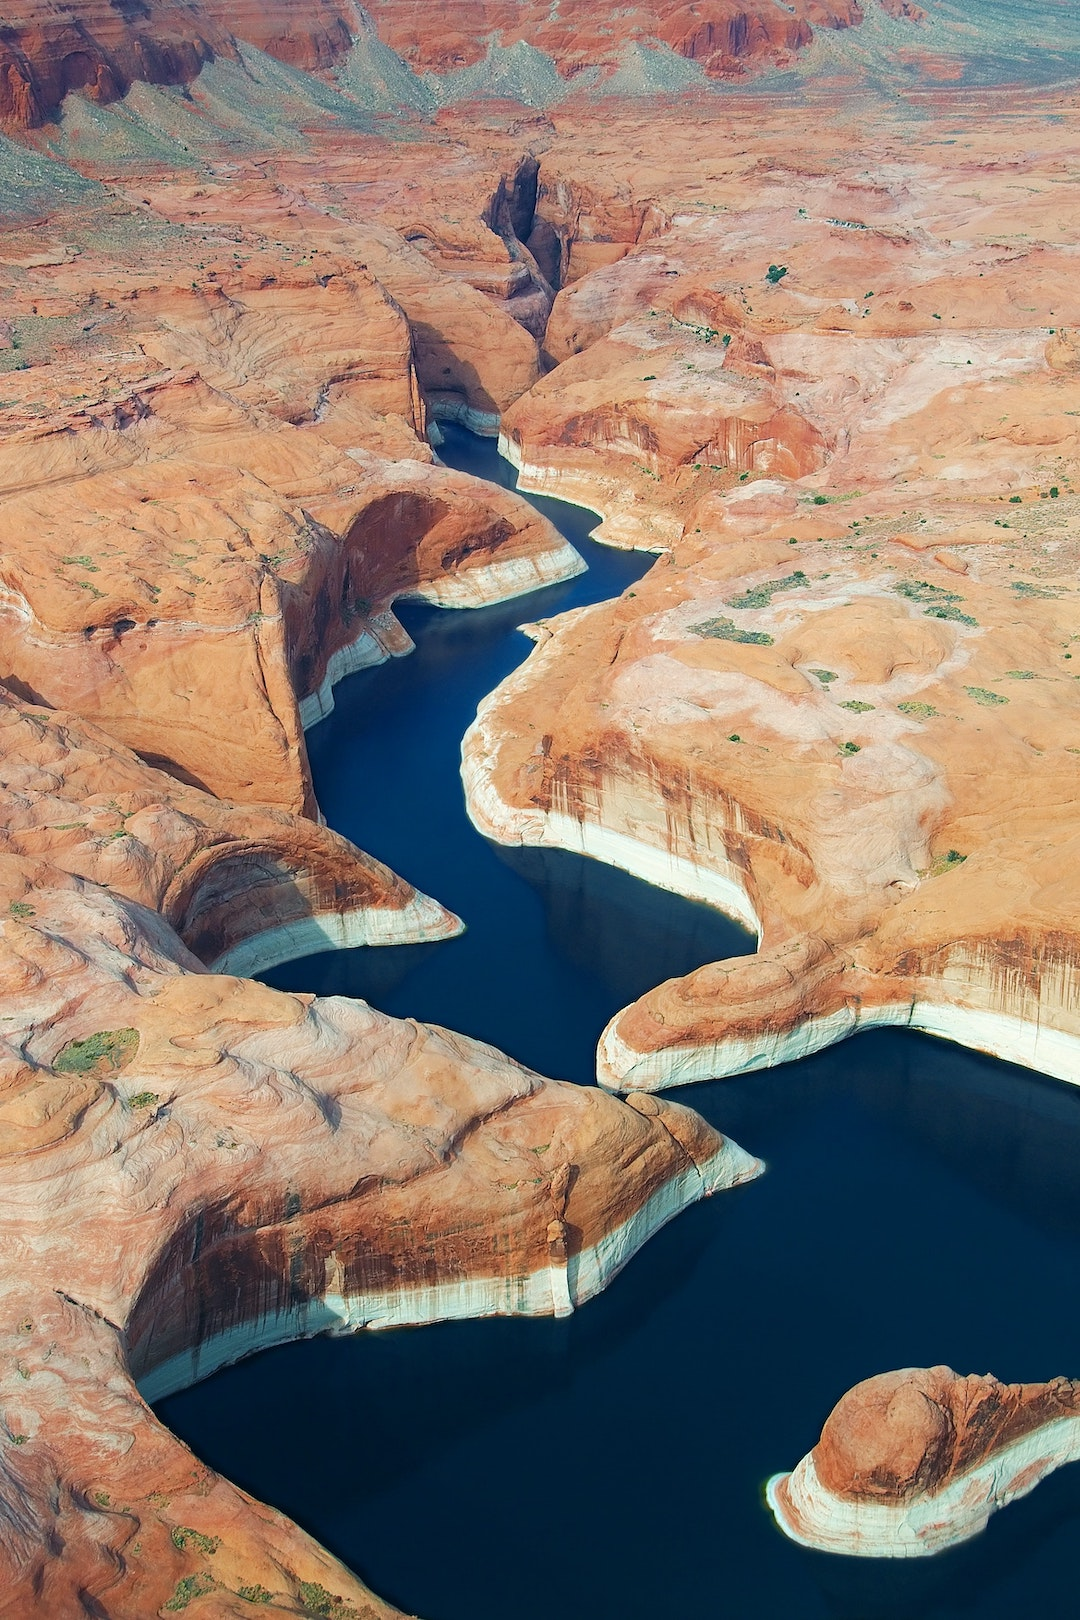 lake powell from above aerial view